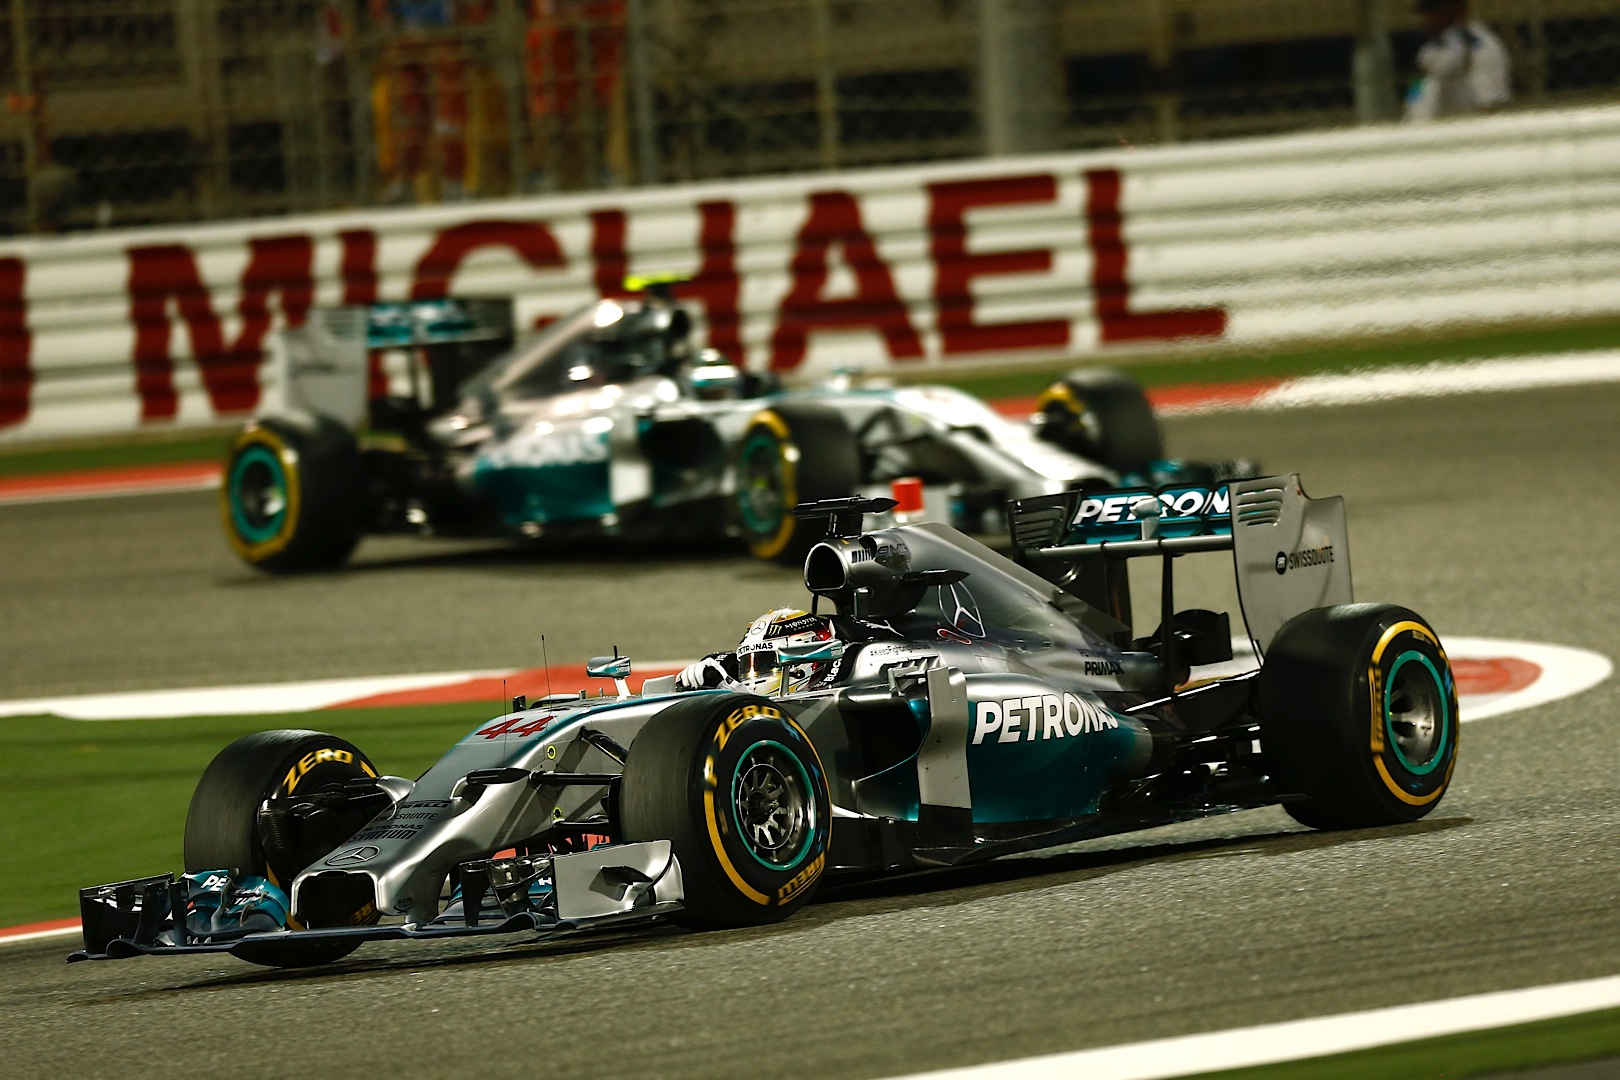 Formula 1 Hd: Coolest F1 Race In Years Sees Hamilton And Rosberg Do A